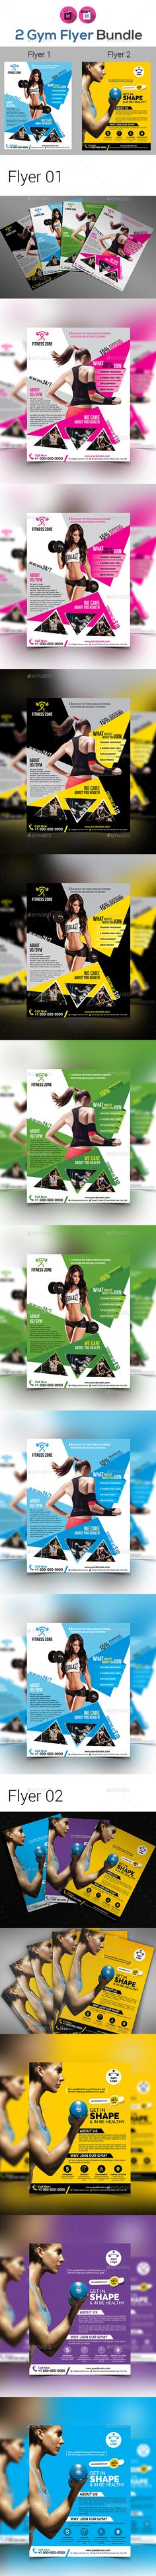 """Fitness Flyer Bundle V4 by aam360 FEATURES:Flyer01 Size: 8.5""""x11�20(Letter Size)Bleed: .25""""Four color variations (Cyan, Green, Yellow, Pink) Fully editable Adobe Ind"""